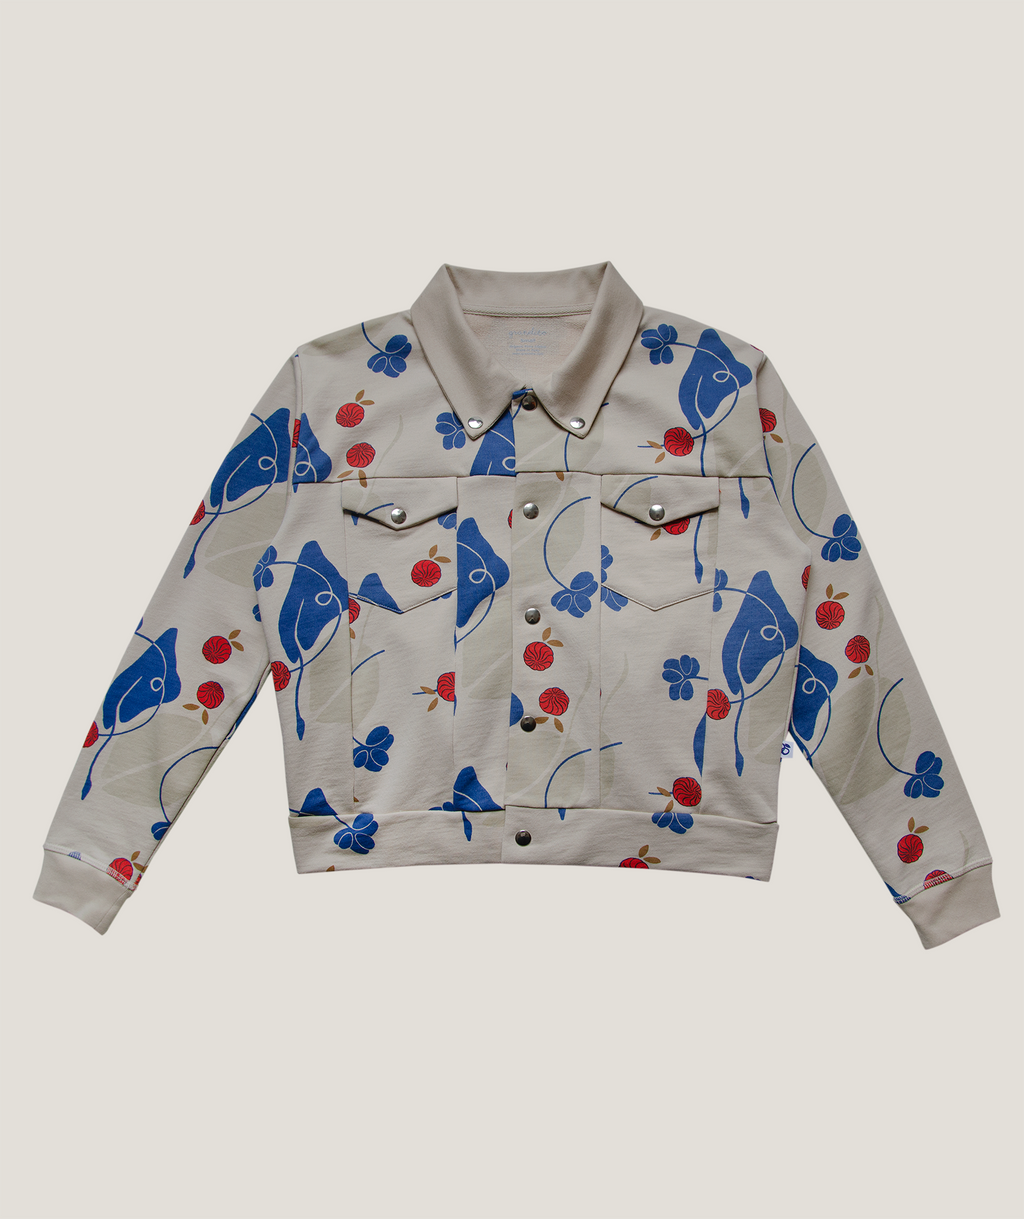 'Lucky' Jersey Jacket ADULT - 100% Organic Pima Cotton